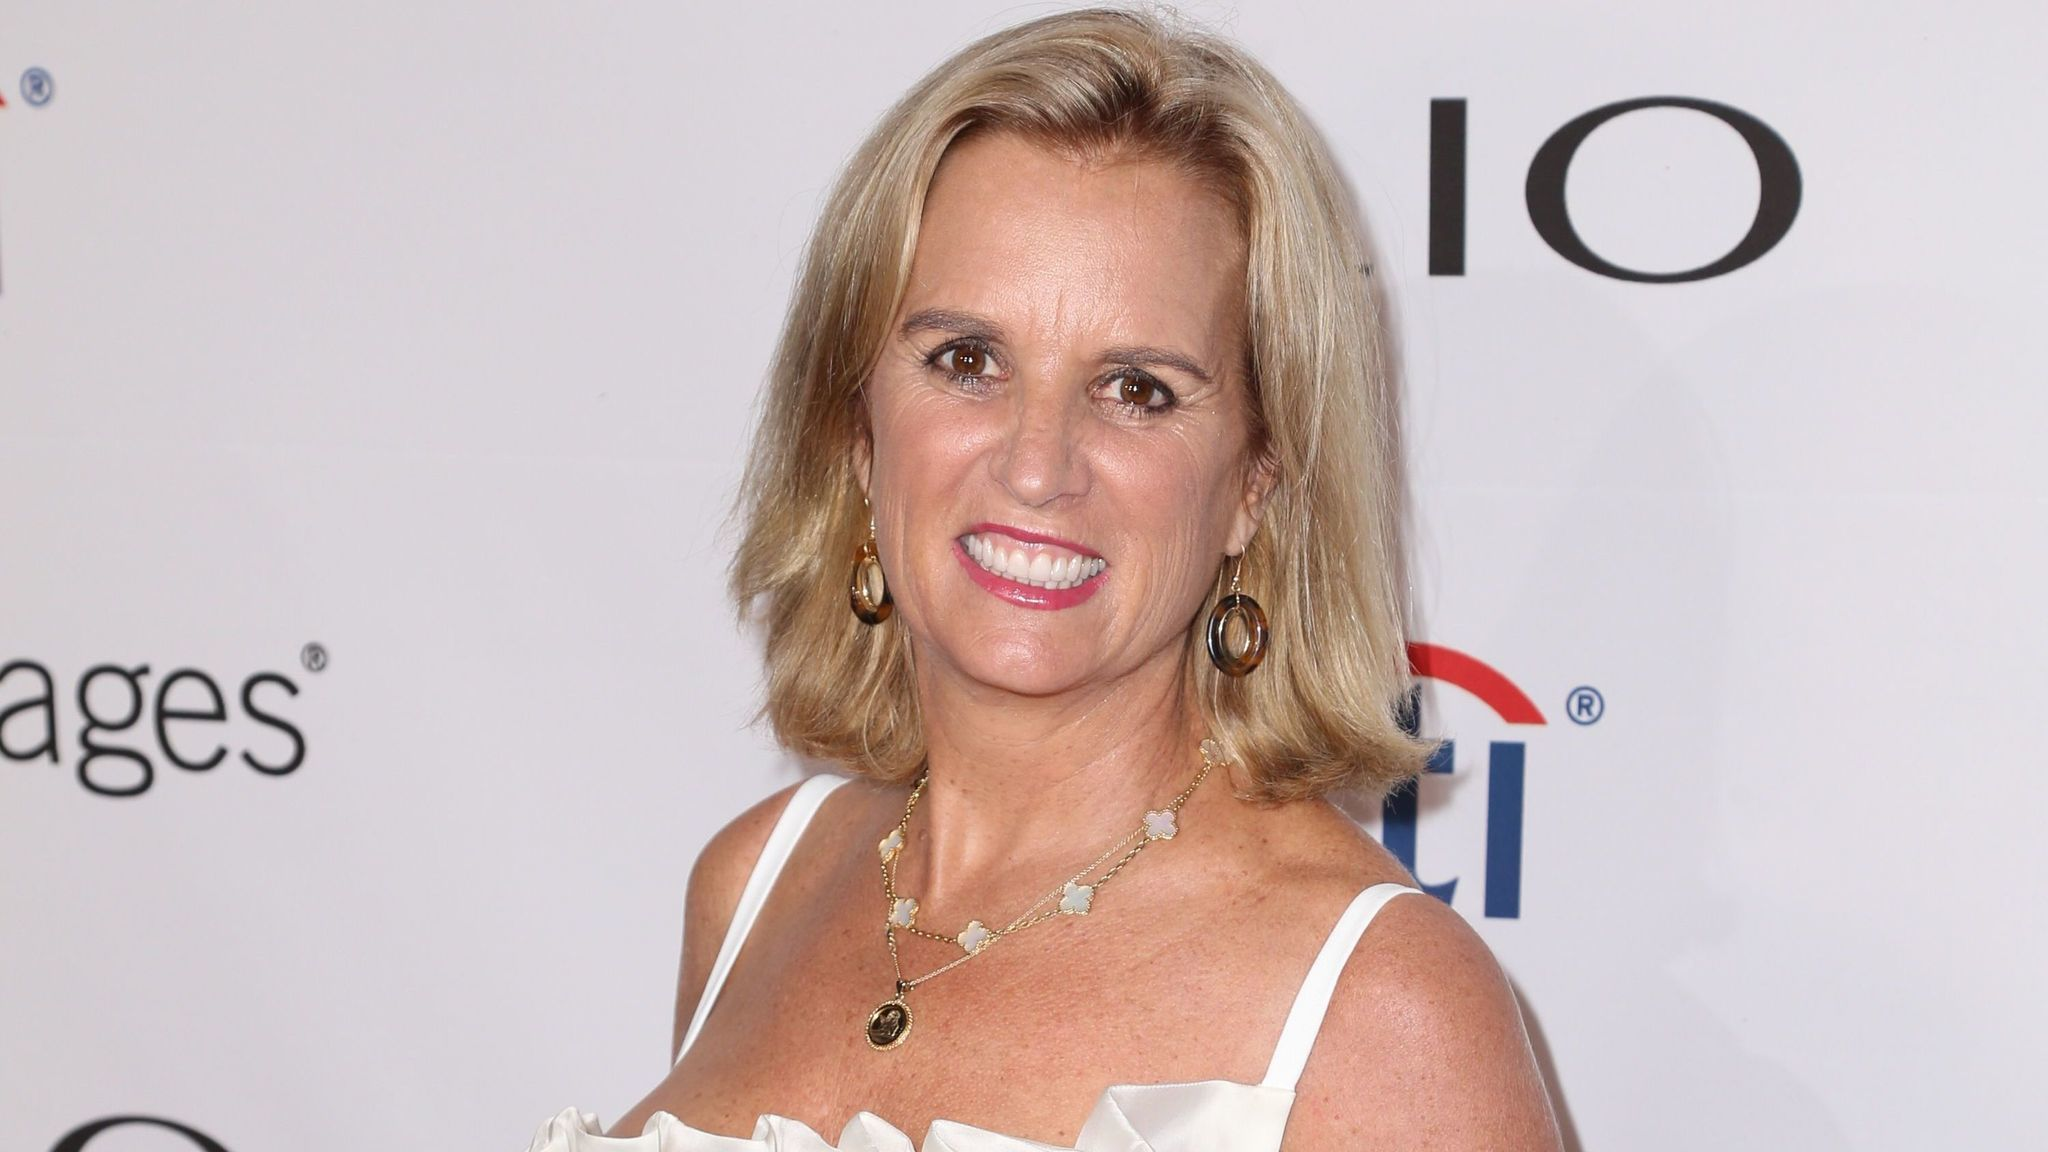 Kerry Kennedy attends the 57th Annual Clio Awards in New York on Sept. 28, 2016.